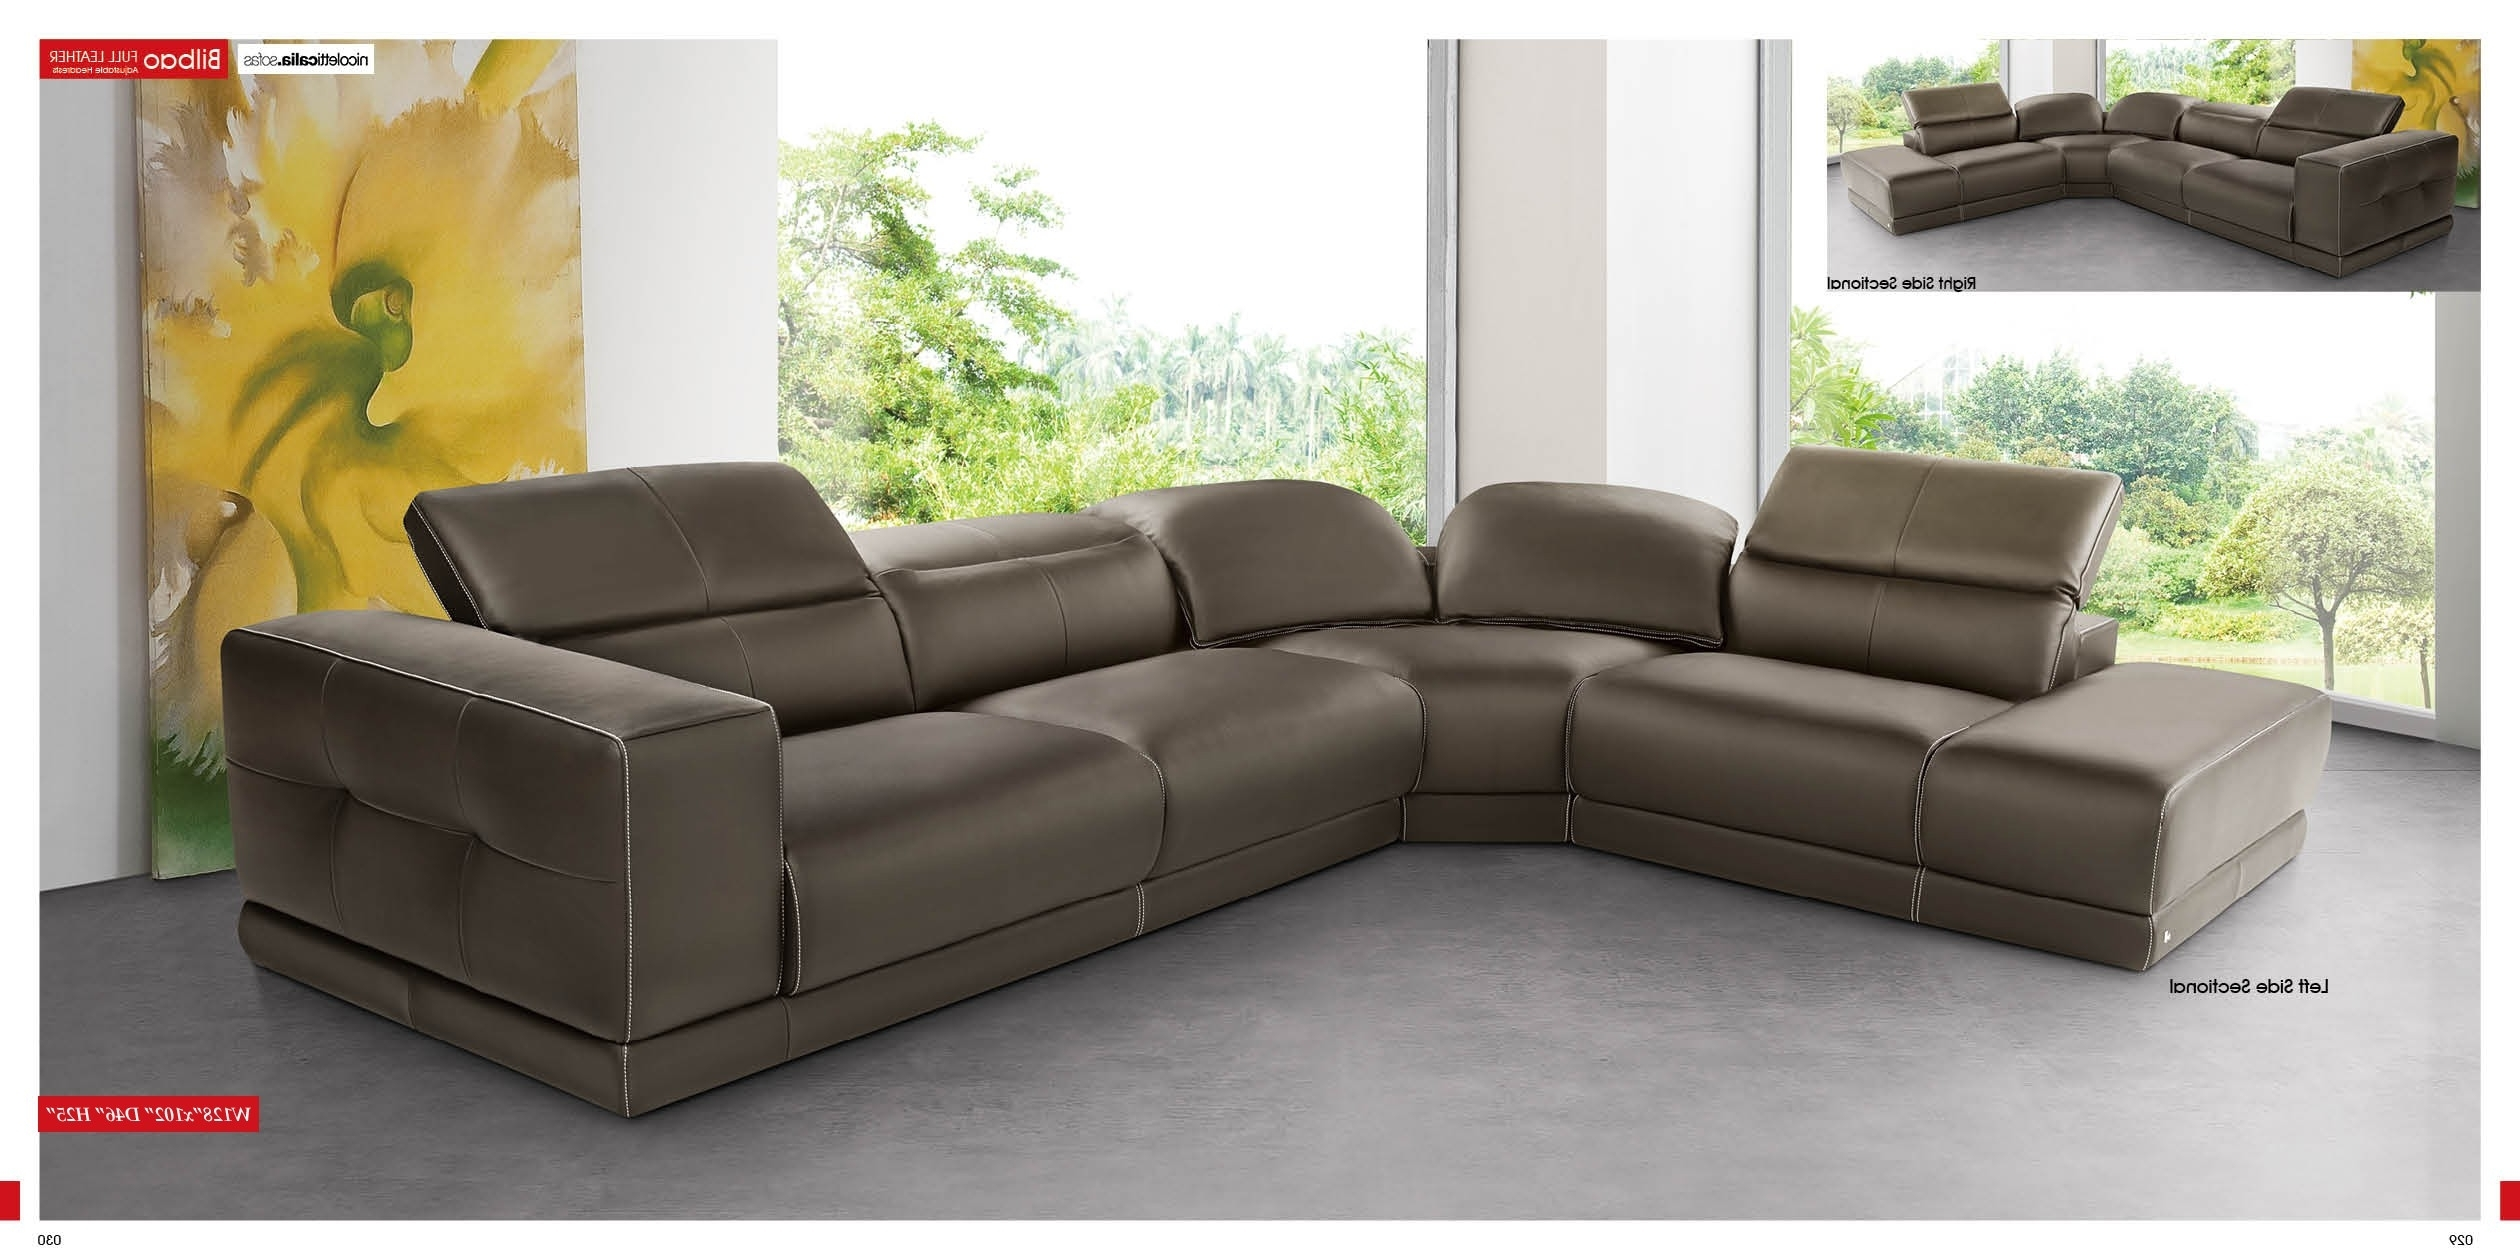 Latest Furniture : Sectional Sofa 120 Sectional Couch Guelph Recliner 3 Intended For 110X110 Sectional Sofas (View 10 of 20)